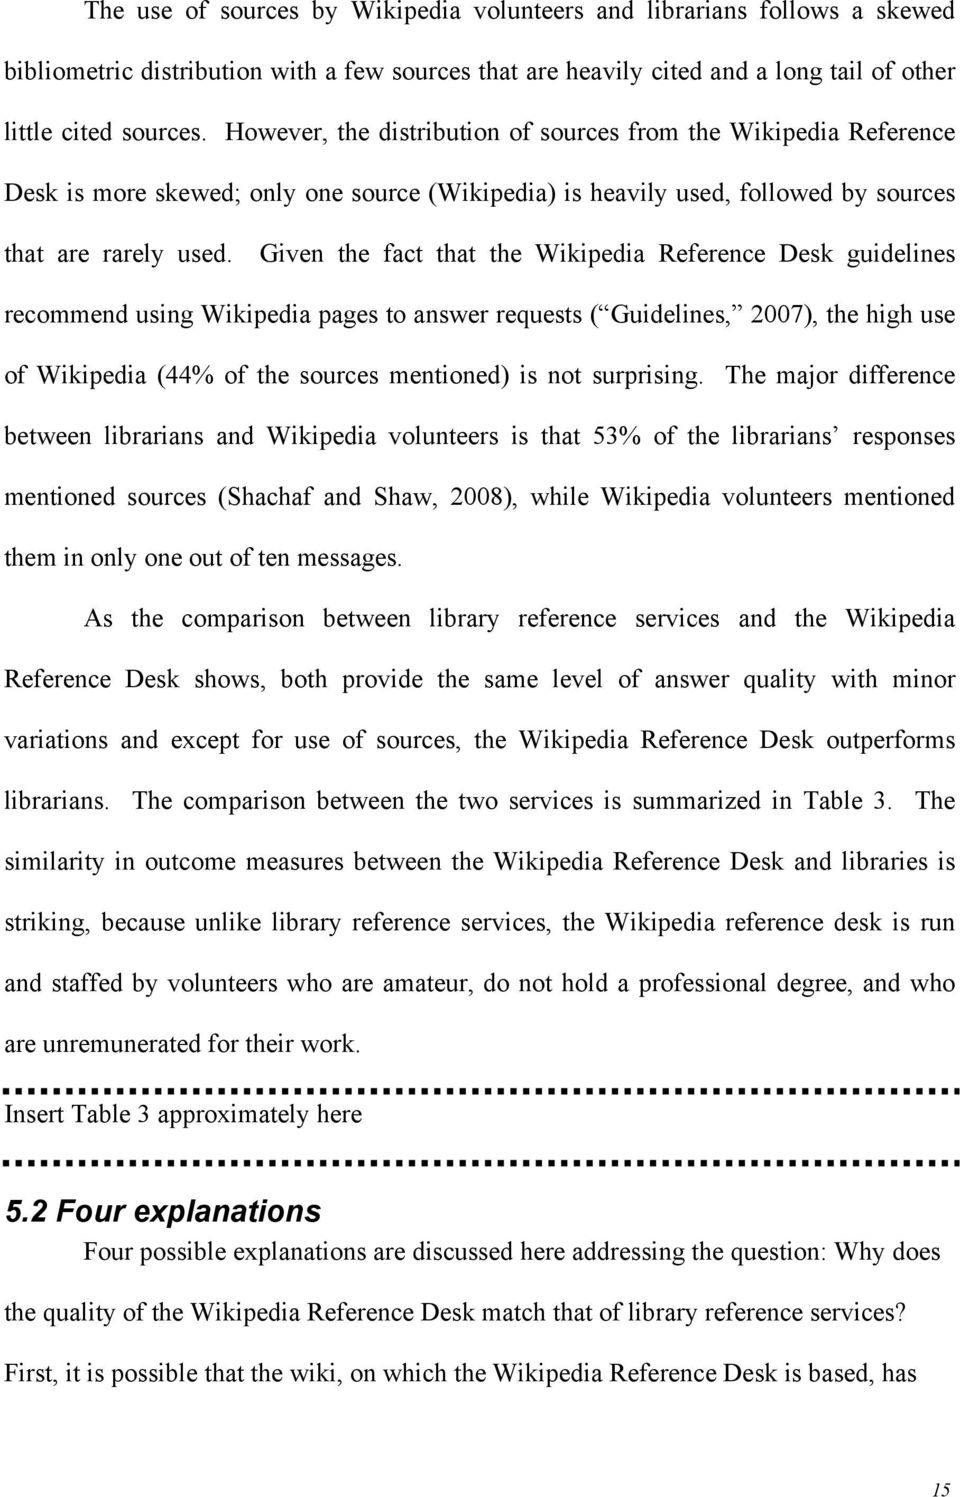 Given the fact that the Wikipedia Reference Desk guidelines recommend using Wikipedia pages to answer requests ( Guidelines, 2007), the high use of Wikipedia (44% of the sources mentioned) is not